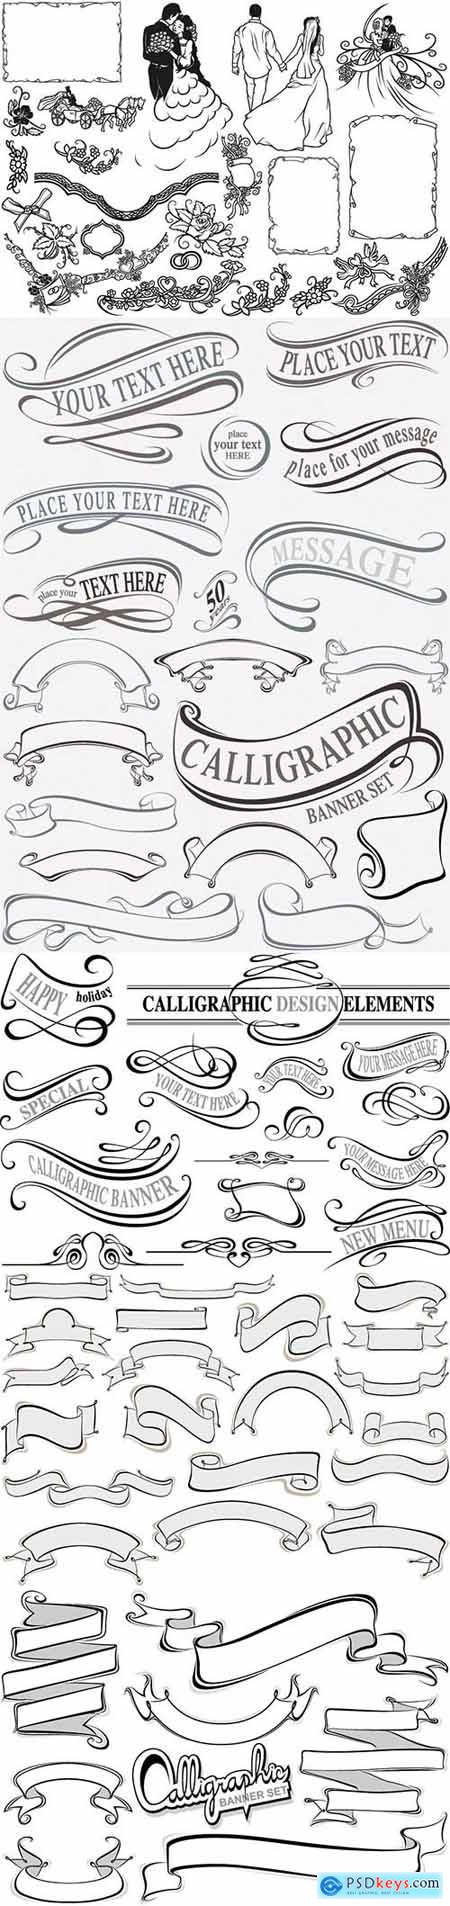 Calligraphic elements collection, design elements illustration